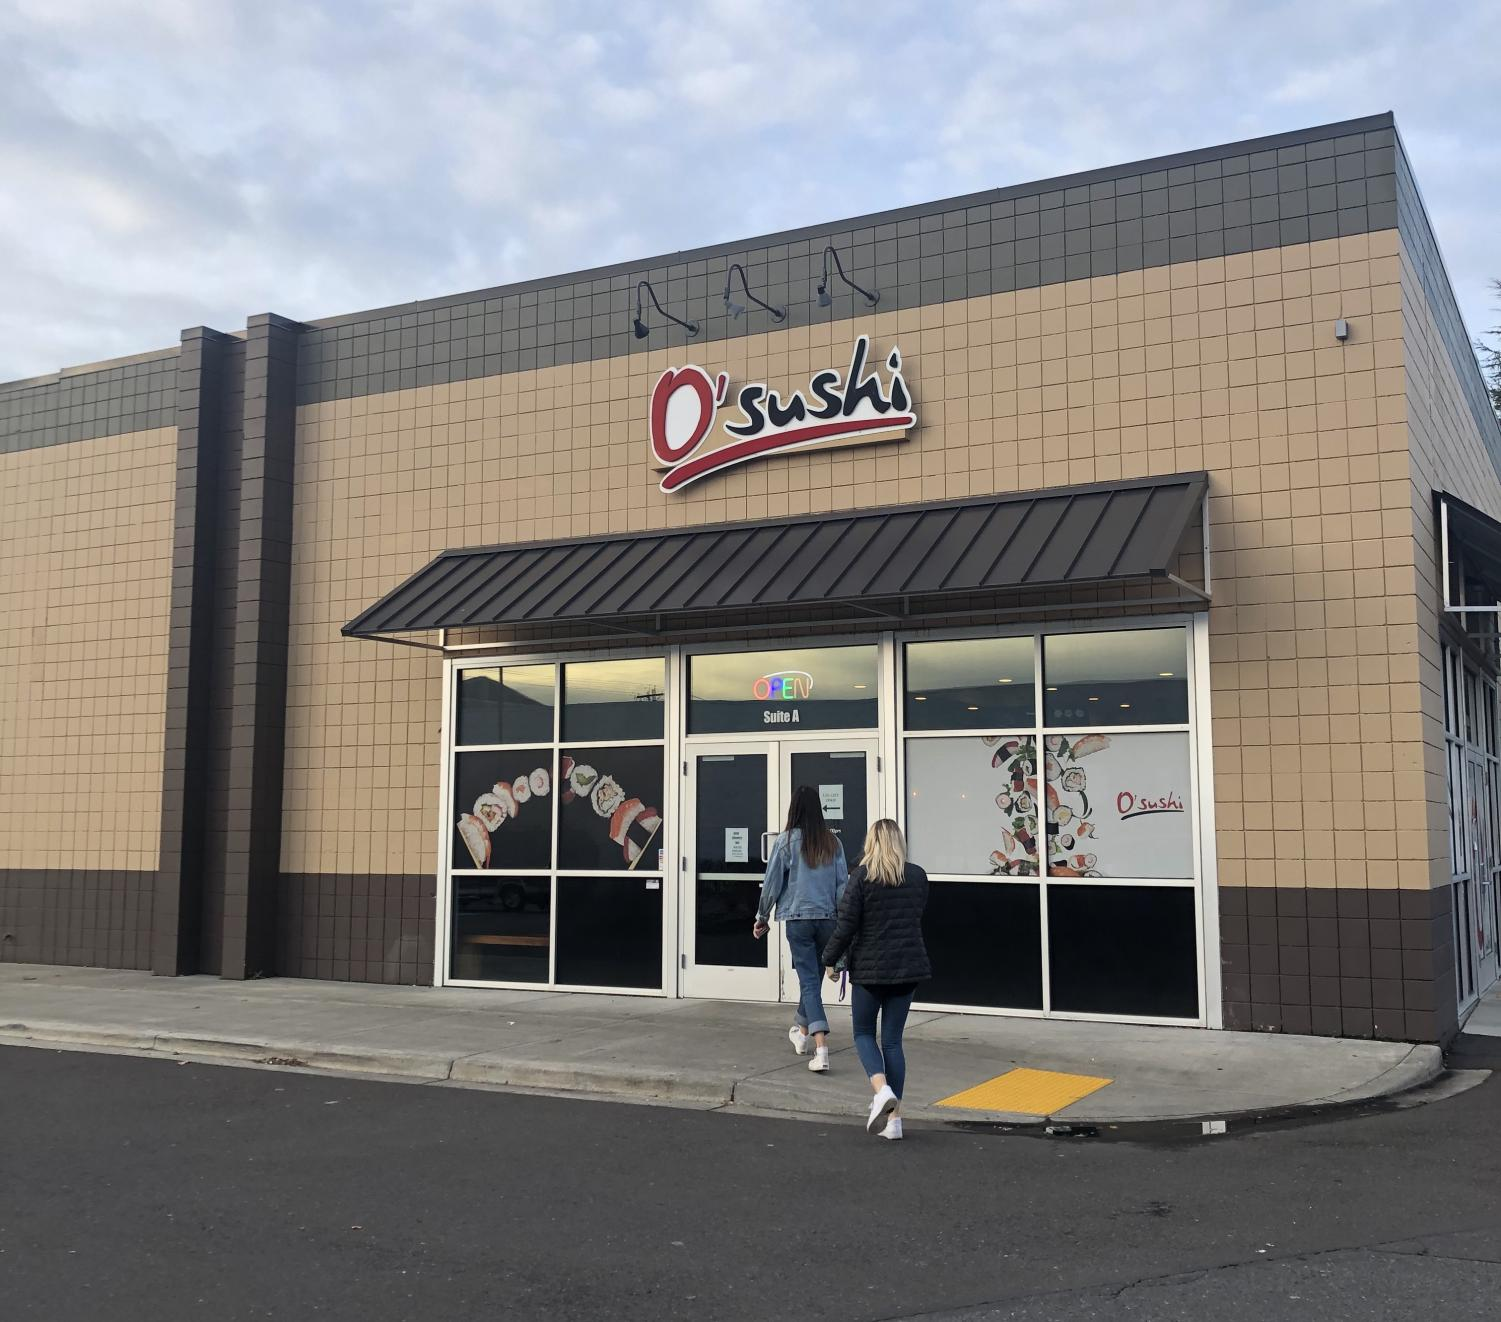 O'Sushi is located on 11424 SE 82nd Ave., just a three minute drive or fifteen minute walk from La Salle.